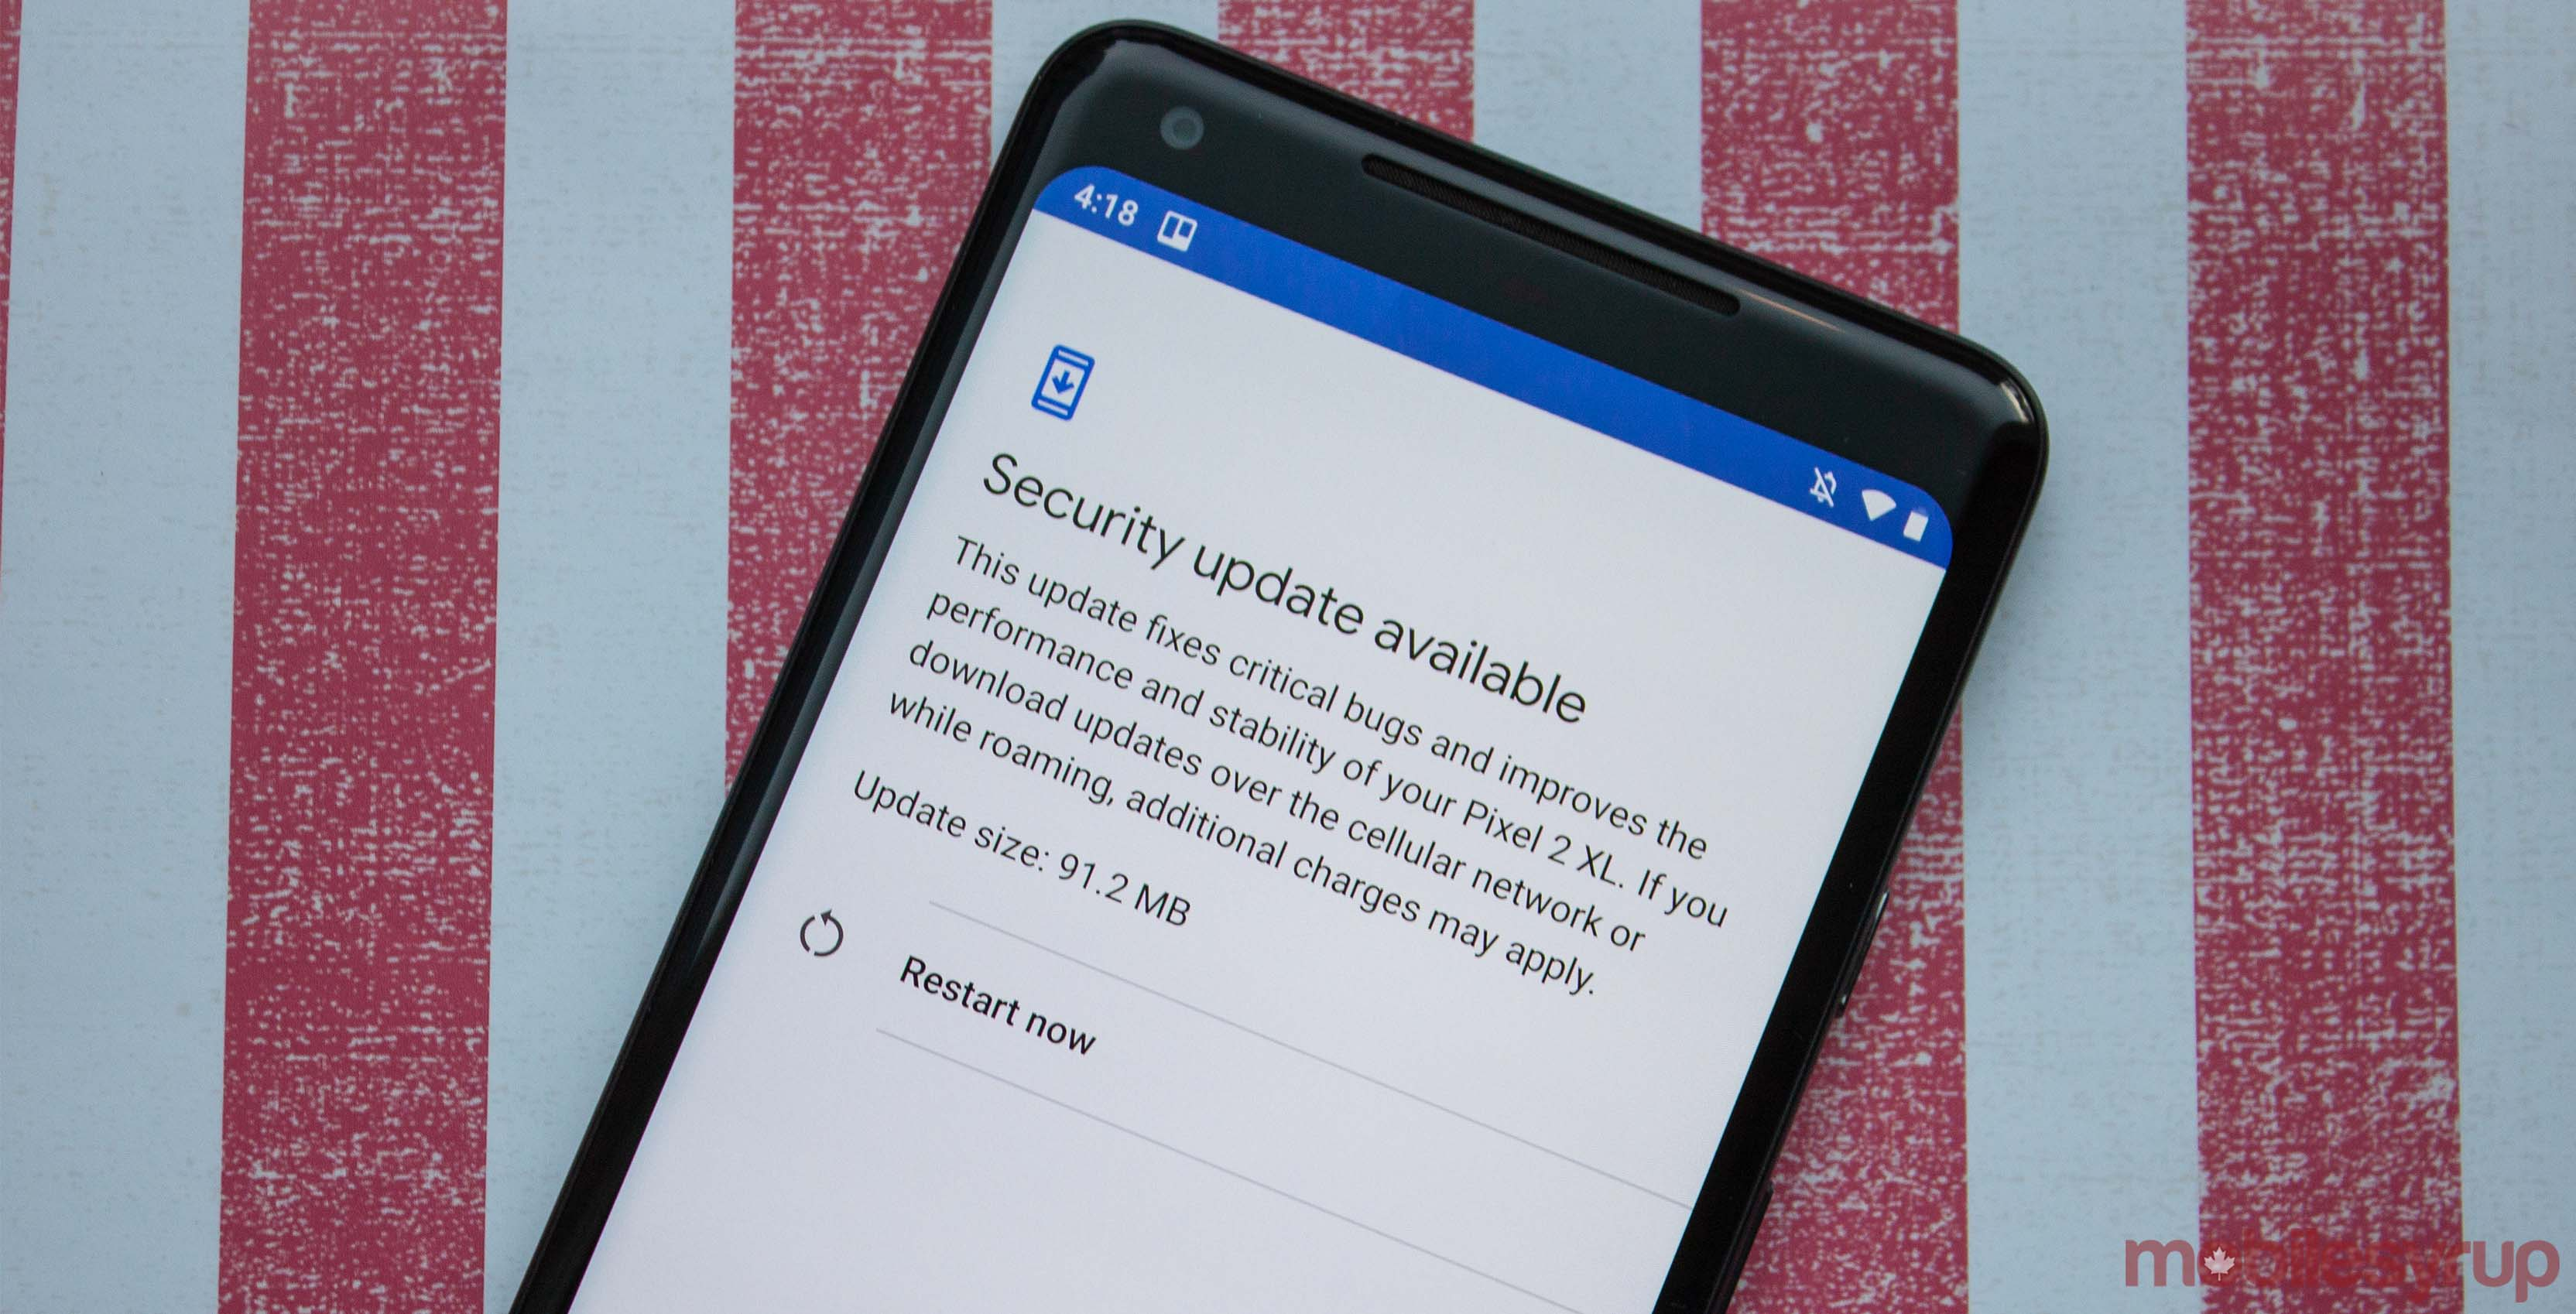 November security patch on Pixel 2 XL